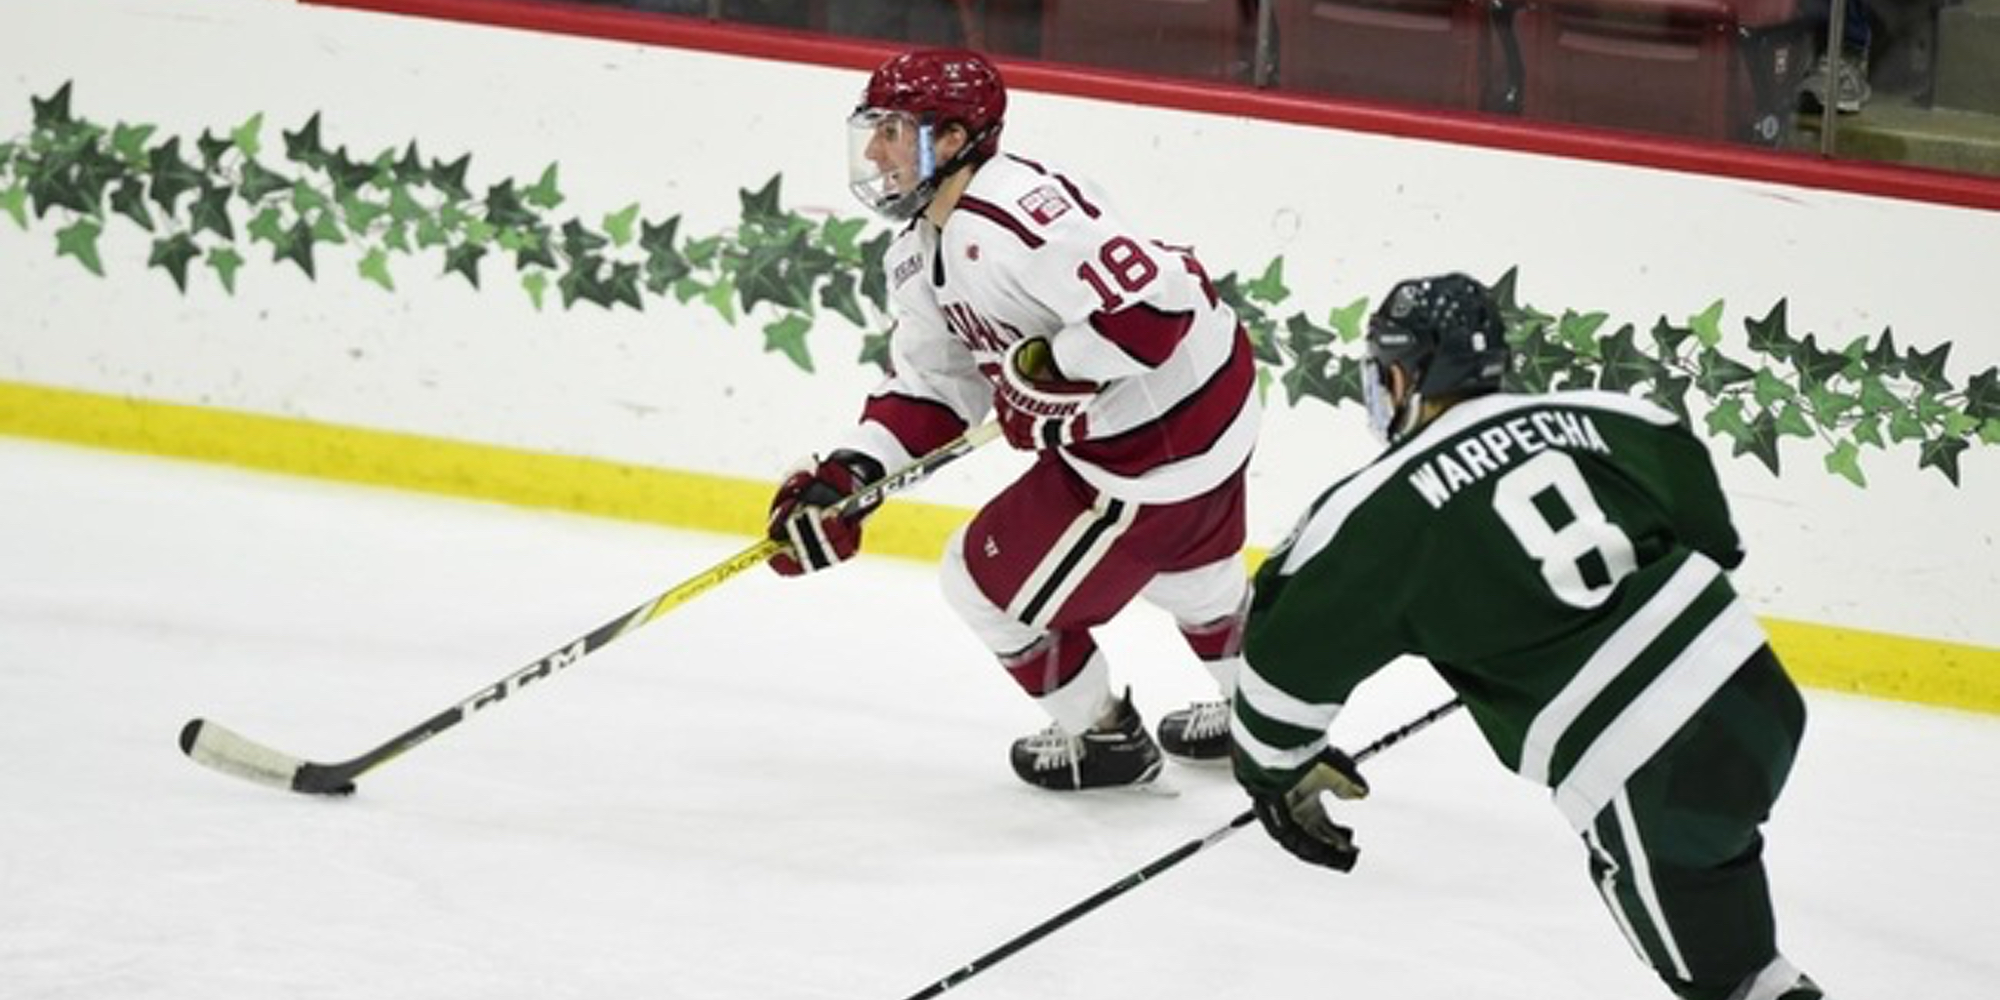 Sophomore defenseman Adam Fox had two goals and two assists in Harvard's 7-1 win over Dartmouth. (Gil Talbot)